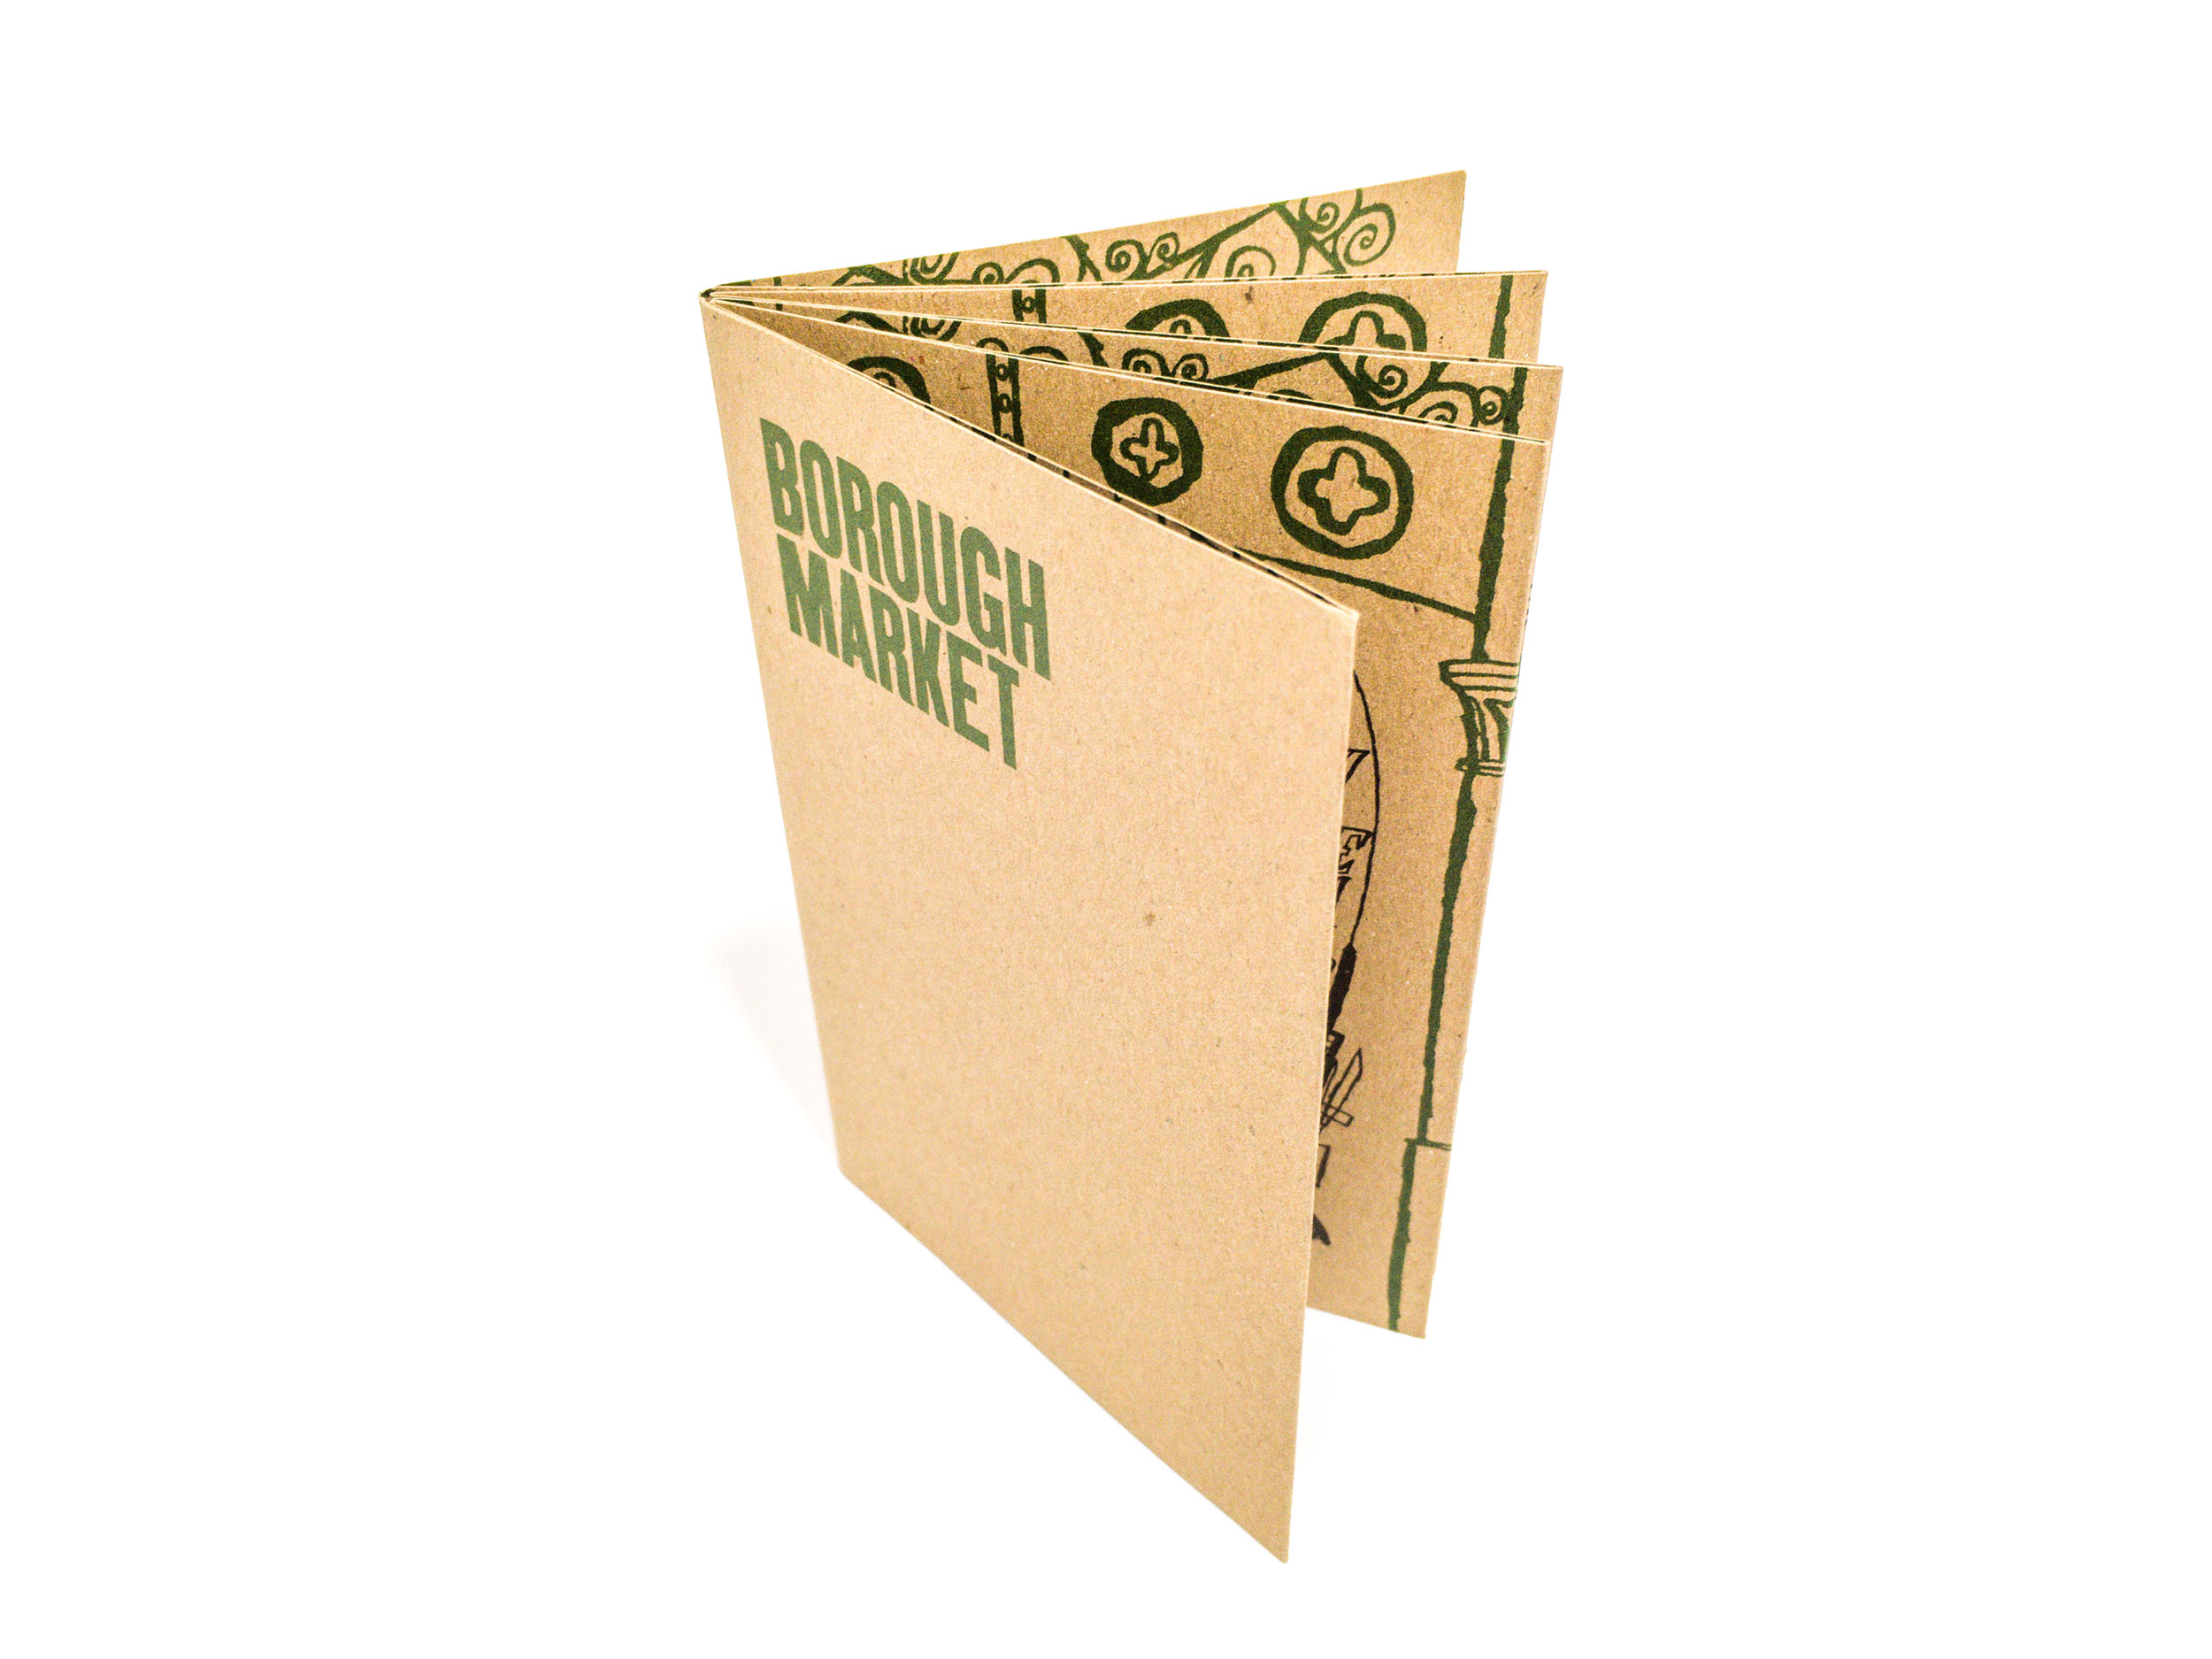 Illustrated Borough Market booklet by James Oses, image 1